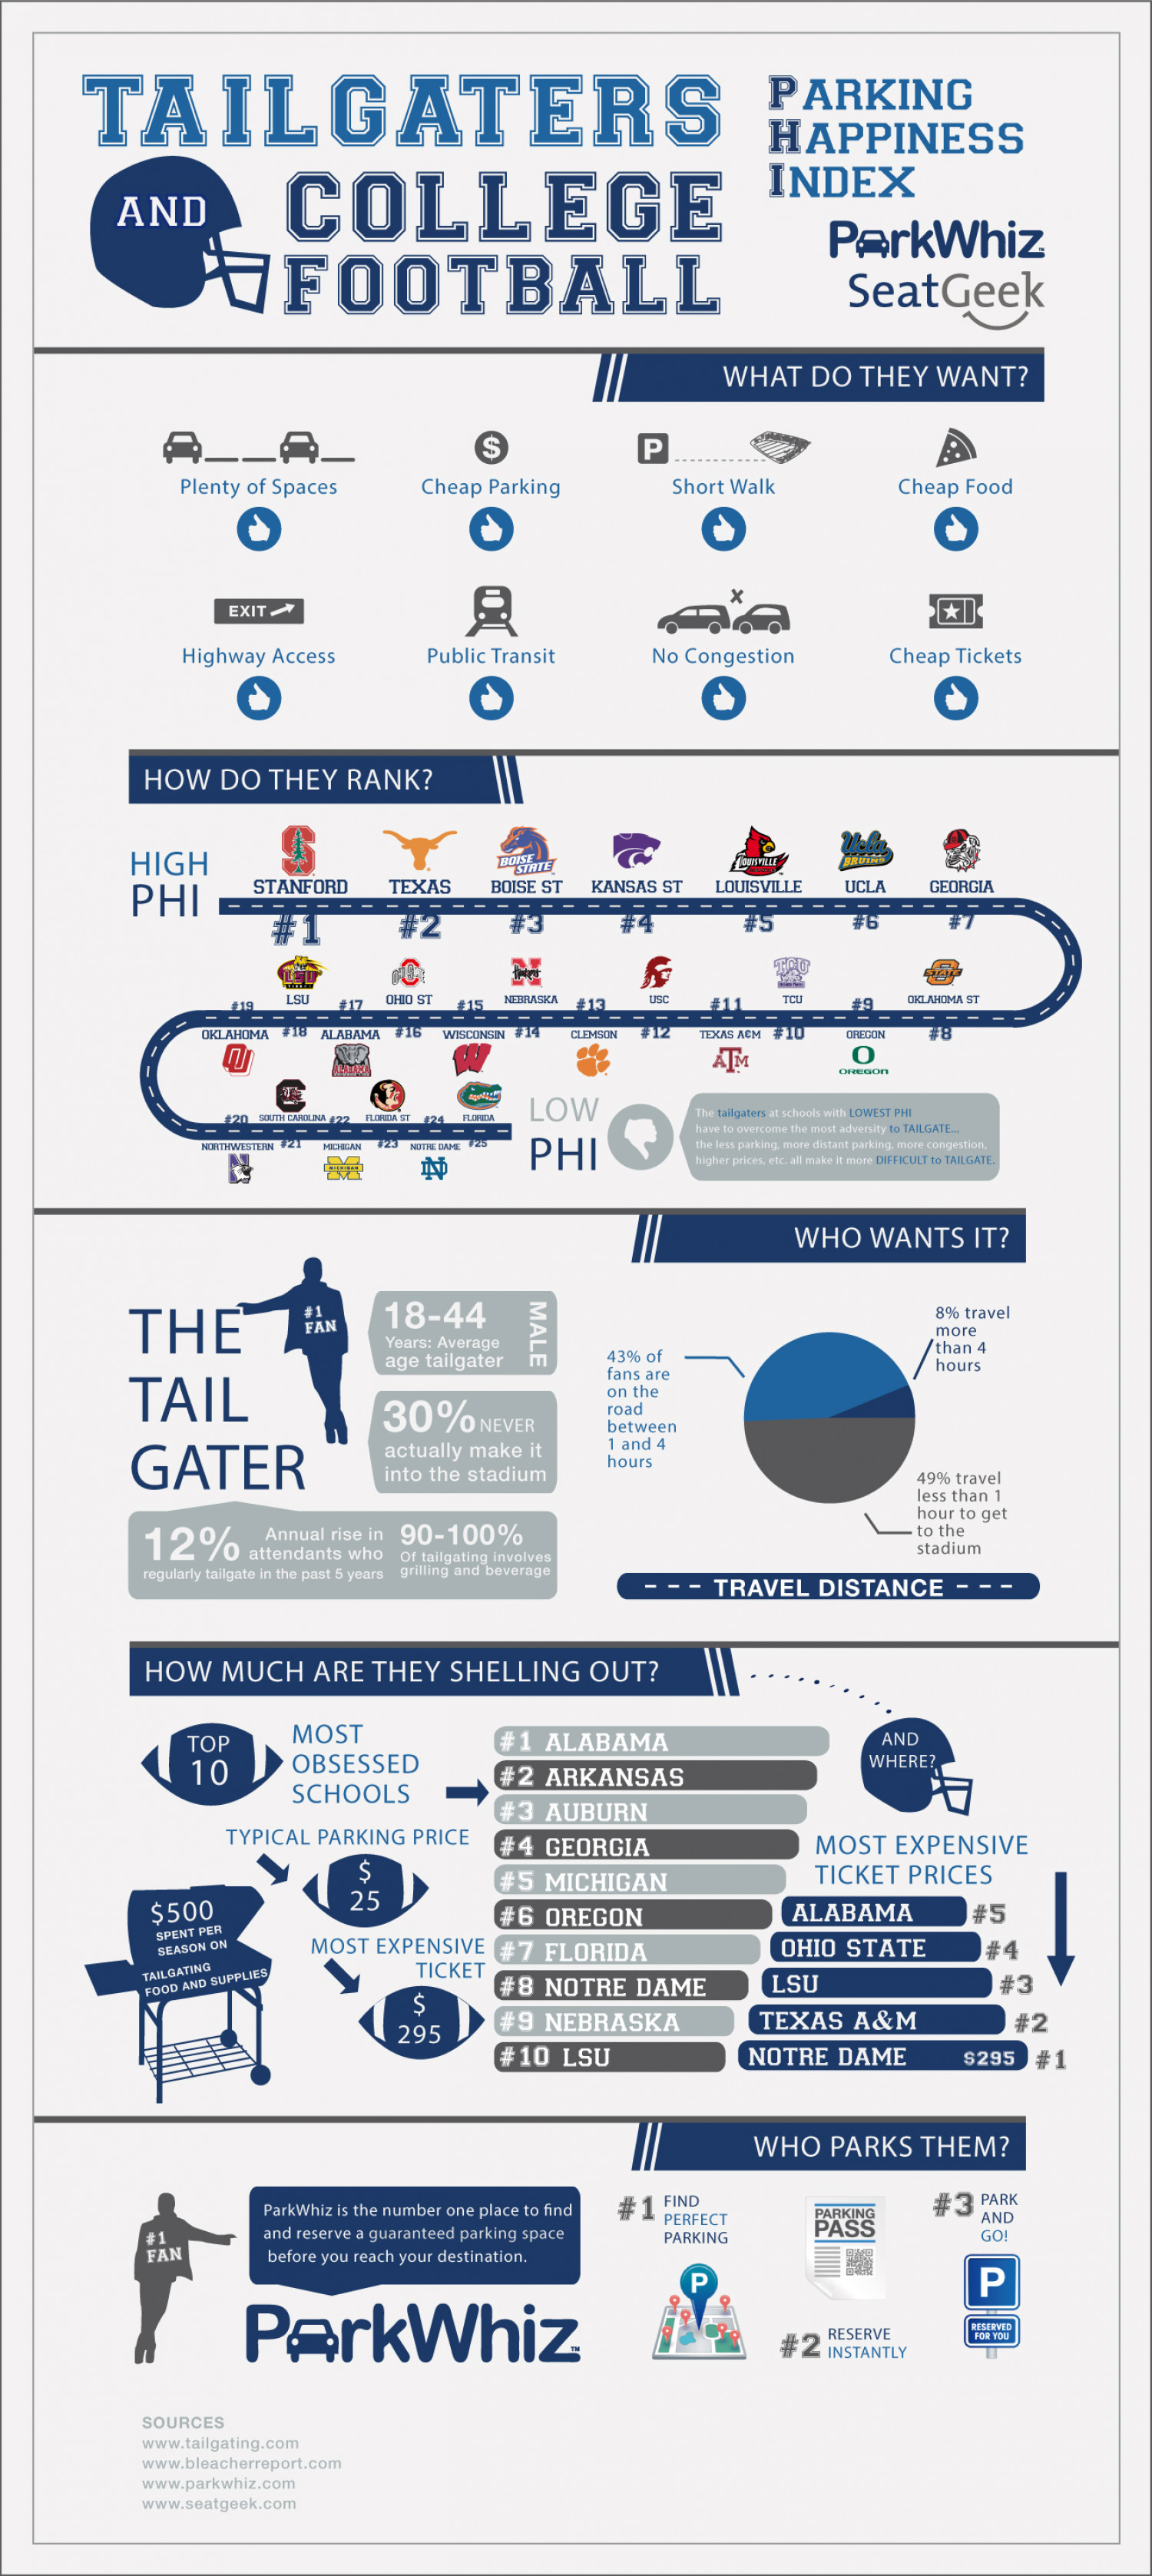 Tailgaters and College Football Parking Happiness Index Infographic